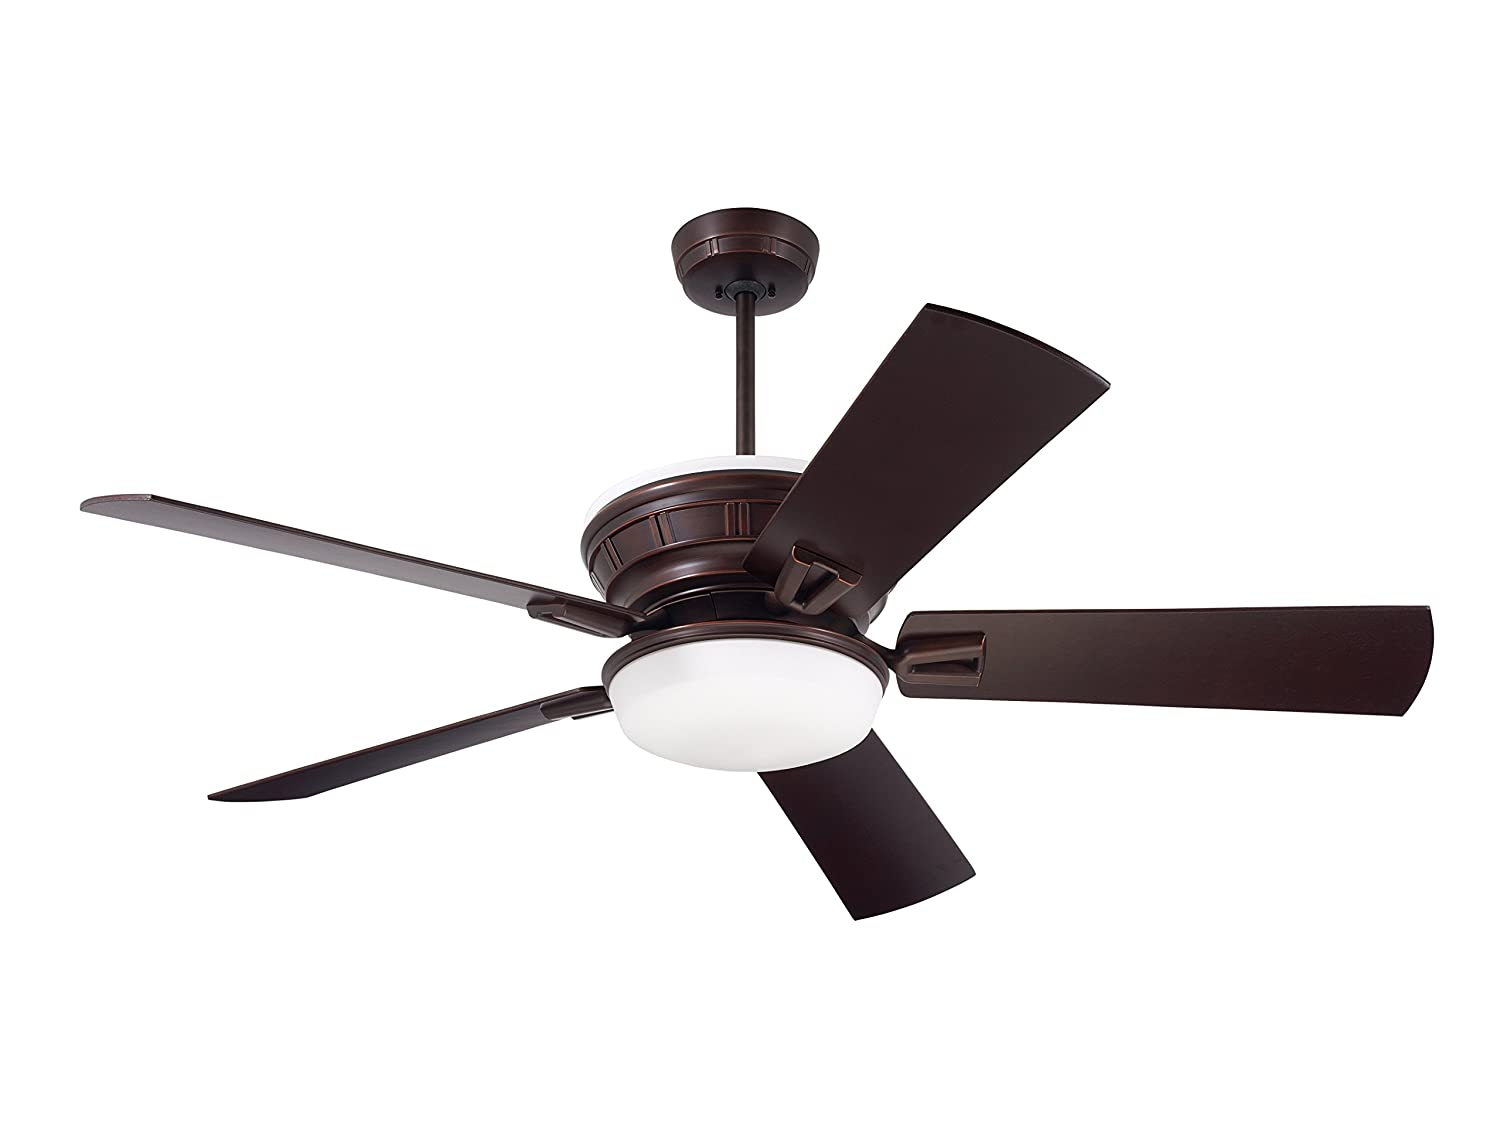 Emerson Ceiling Fans CF965VNB Portland Eco Ceiling Fan with Light, Wall Control and 54 Blades, Venetian Bronze Finish